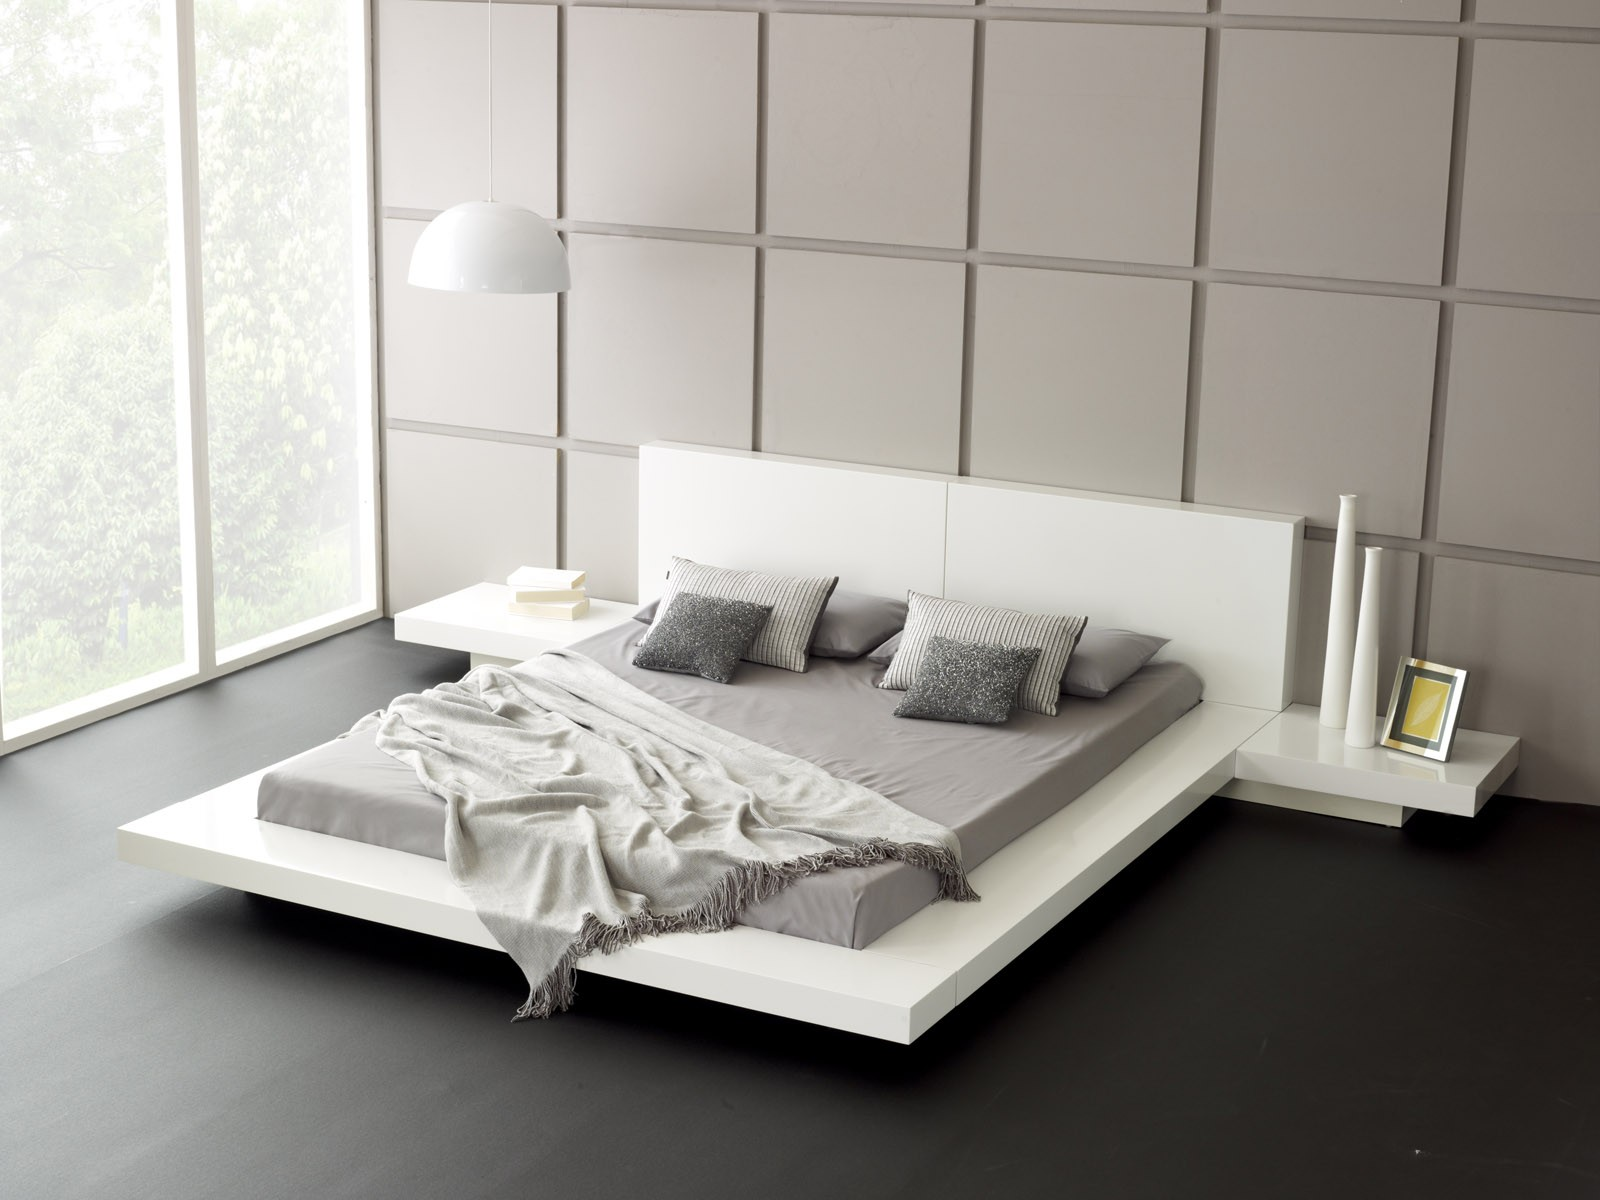 White Wooden Bed Frames Low Profile Queen Square Panel Wall